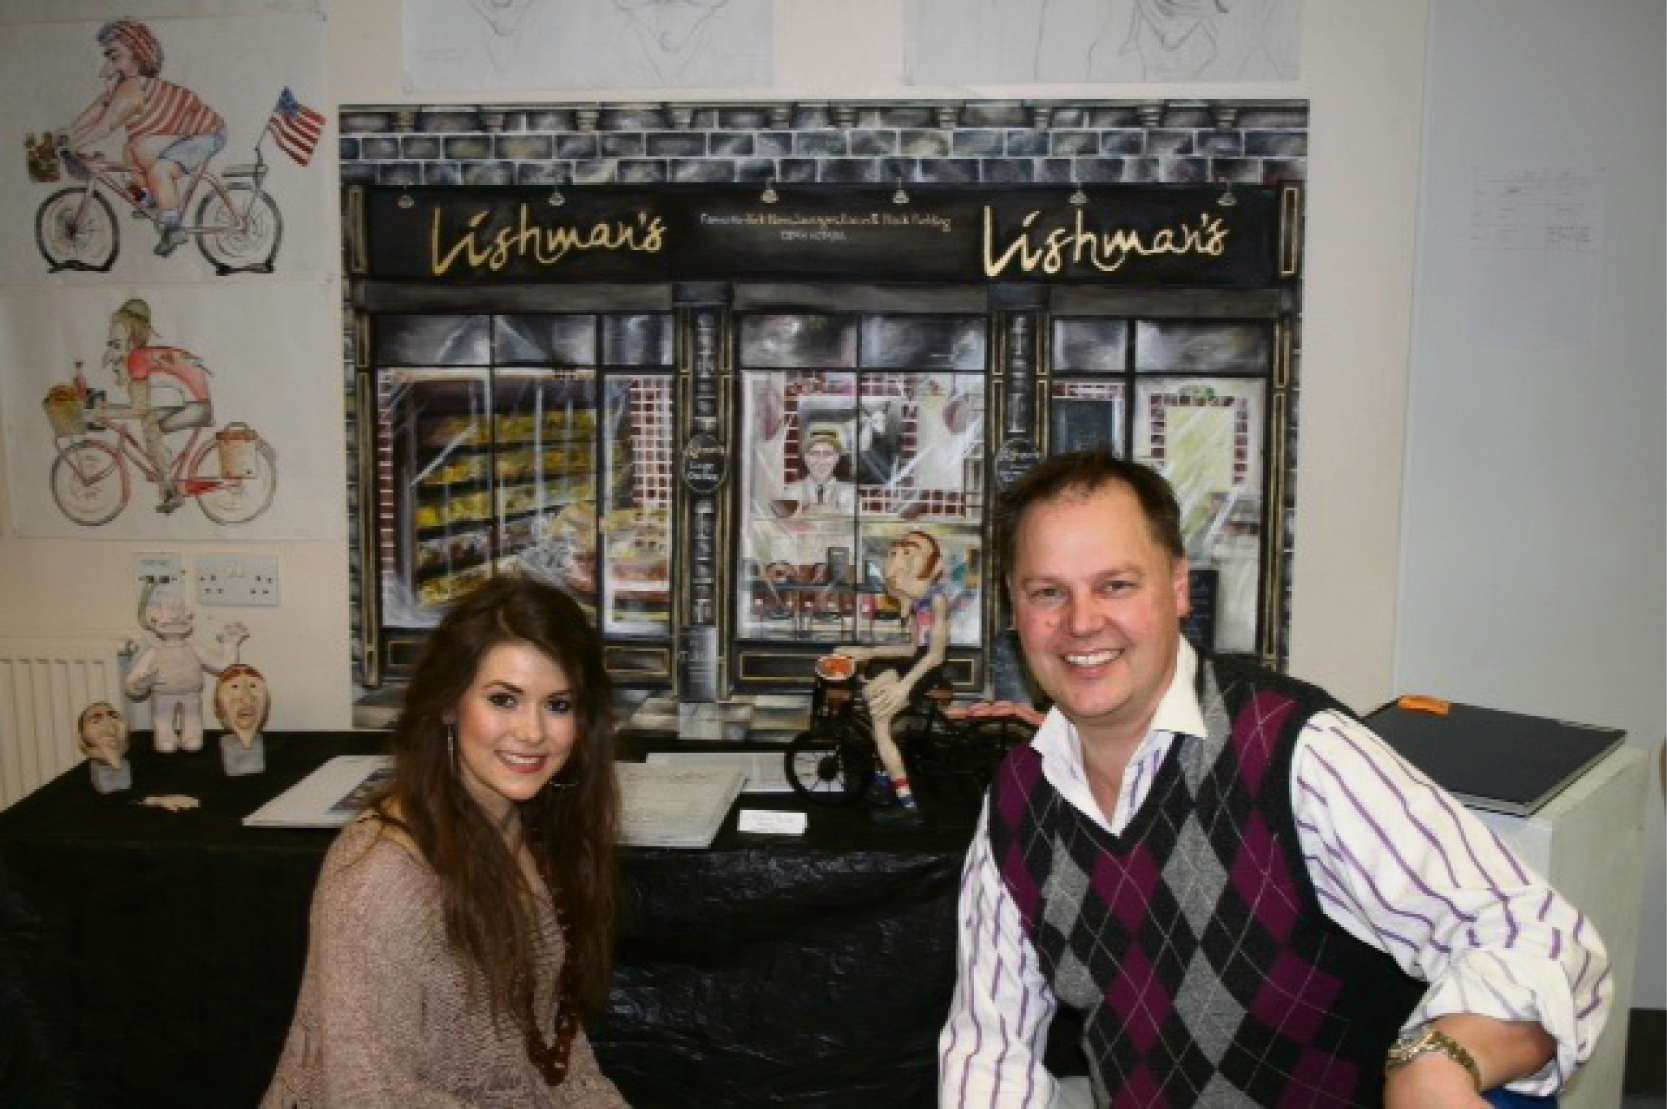 IGS A level art student  Alice Vaughan with David Lishman in front of Alice's art work depicting David's shop in Ilkley.